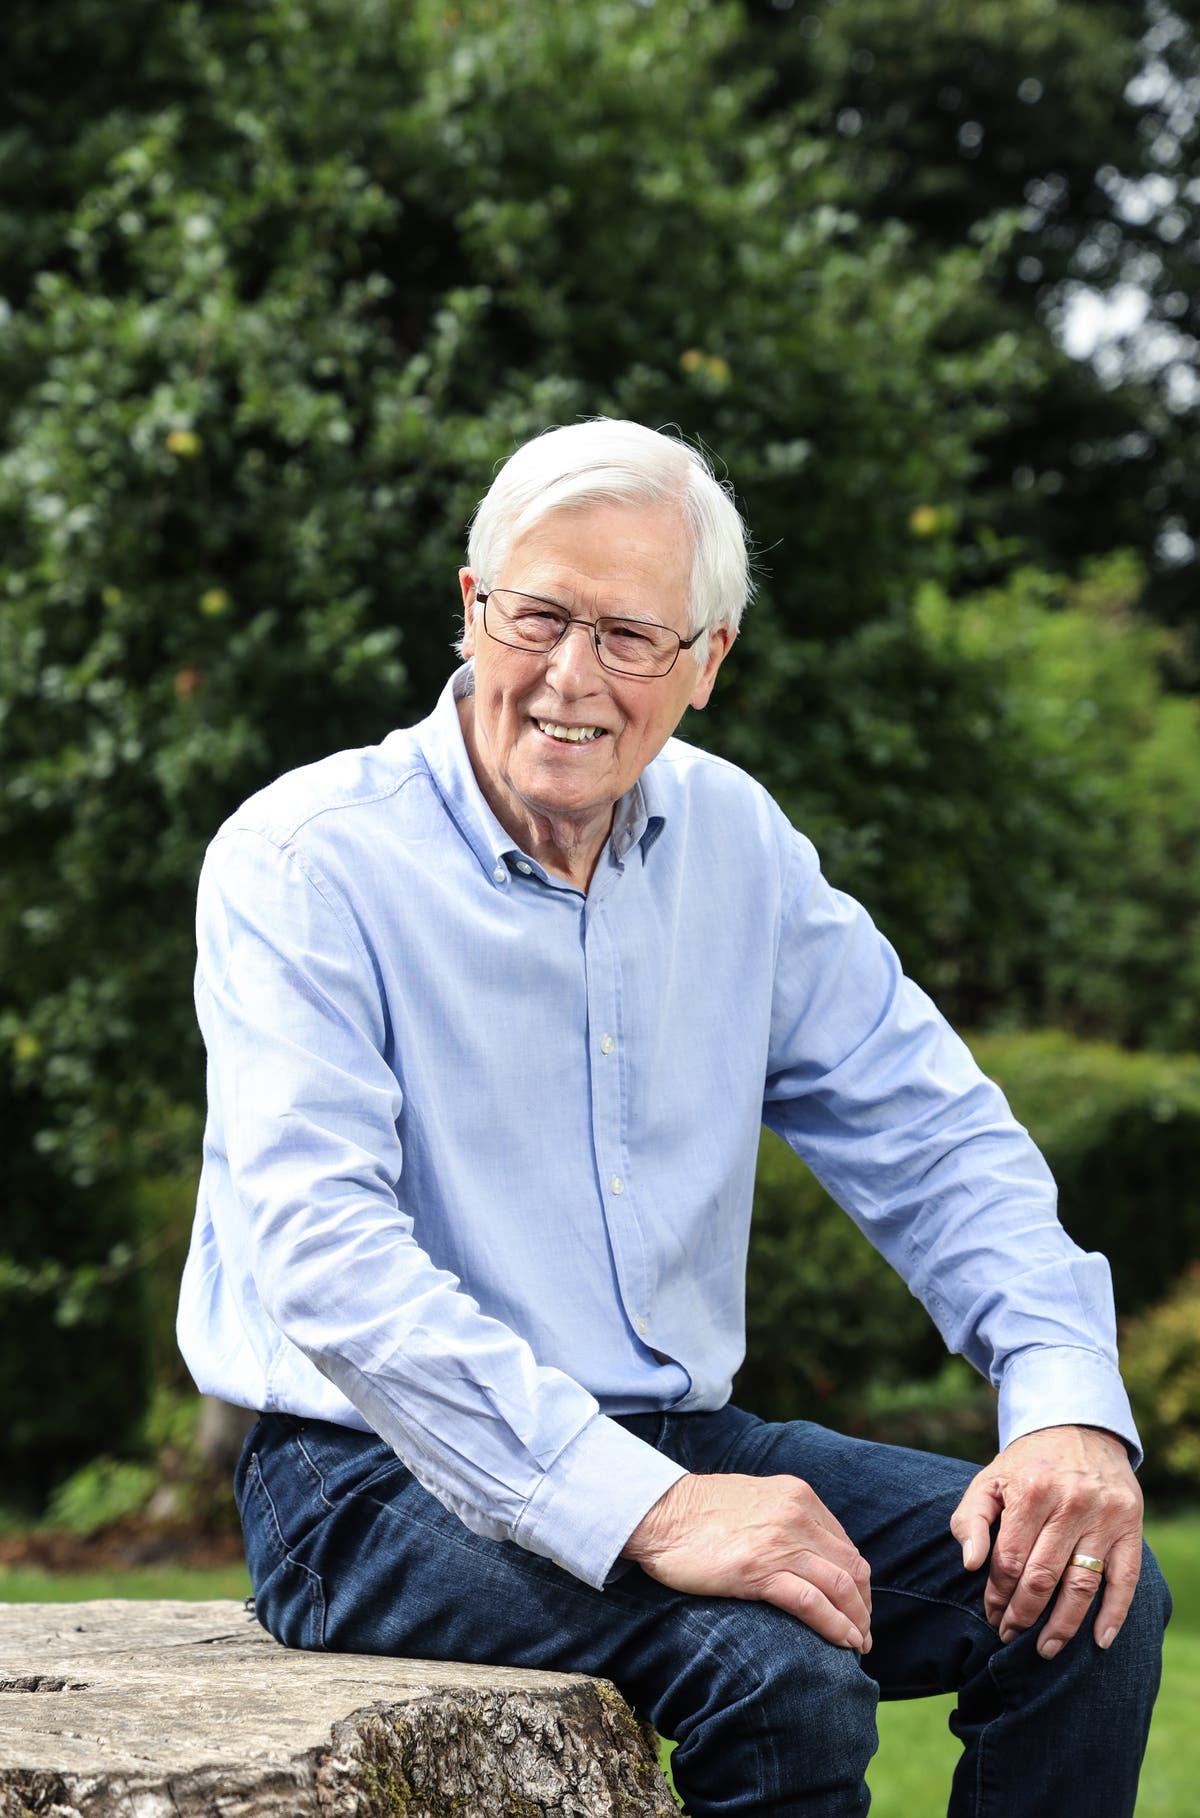 Countryfile's John Craven on the joys of nature, relaxing in his garden, and how hearing aids changed his life